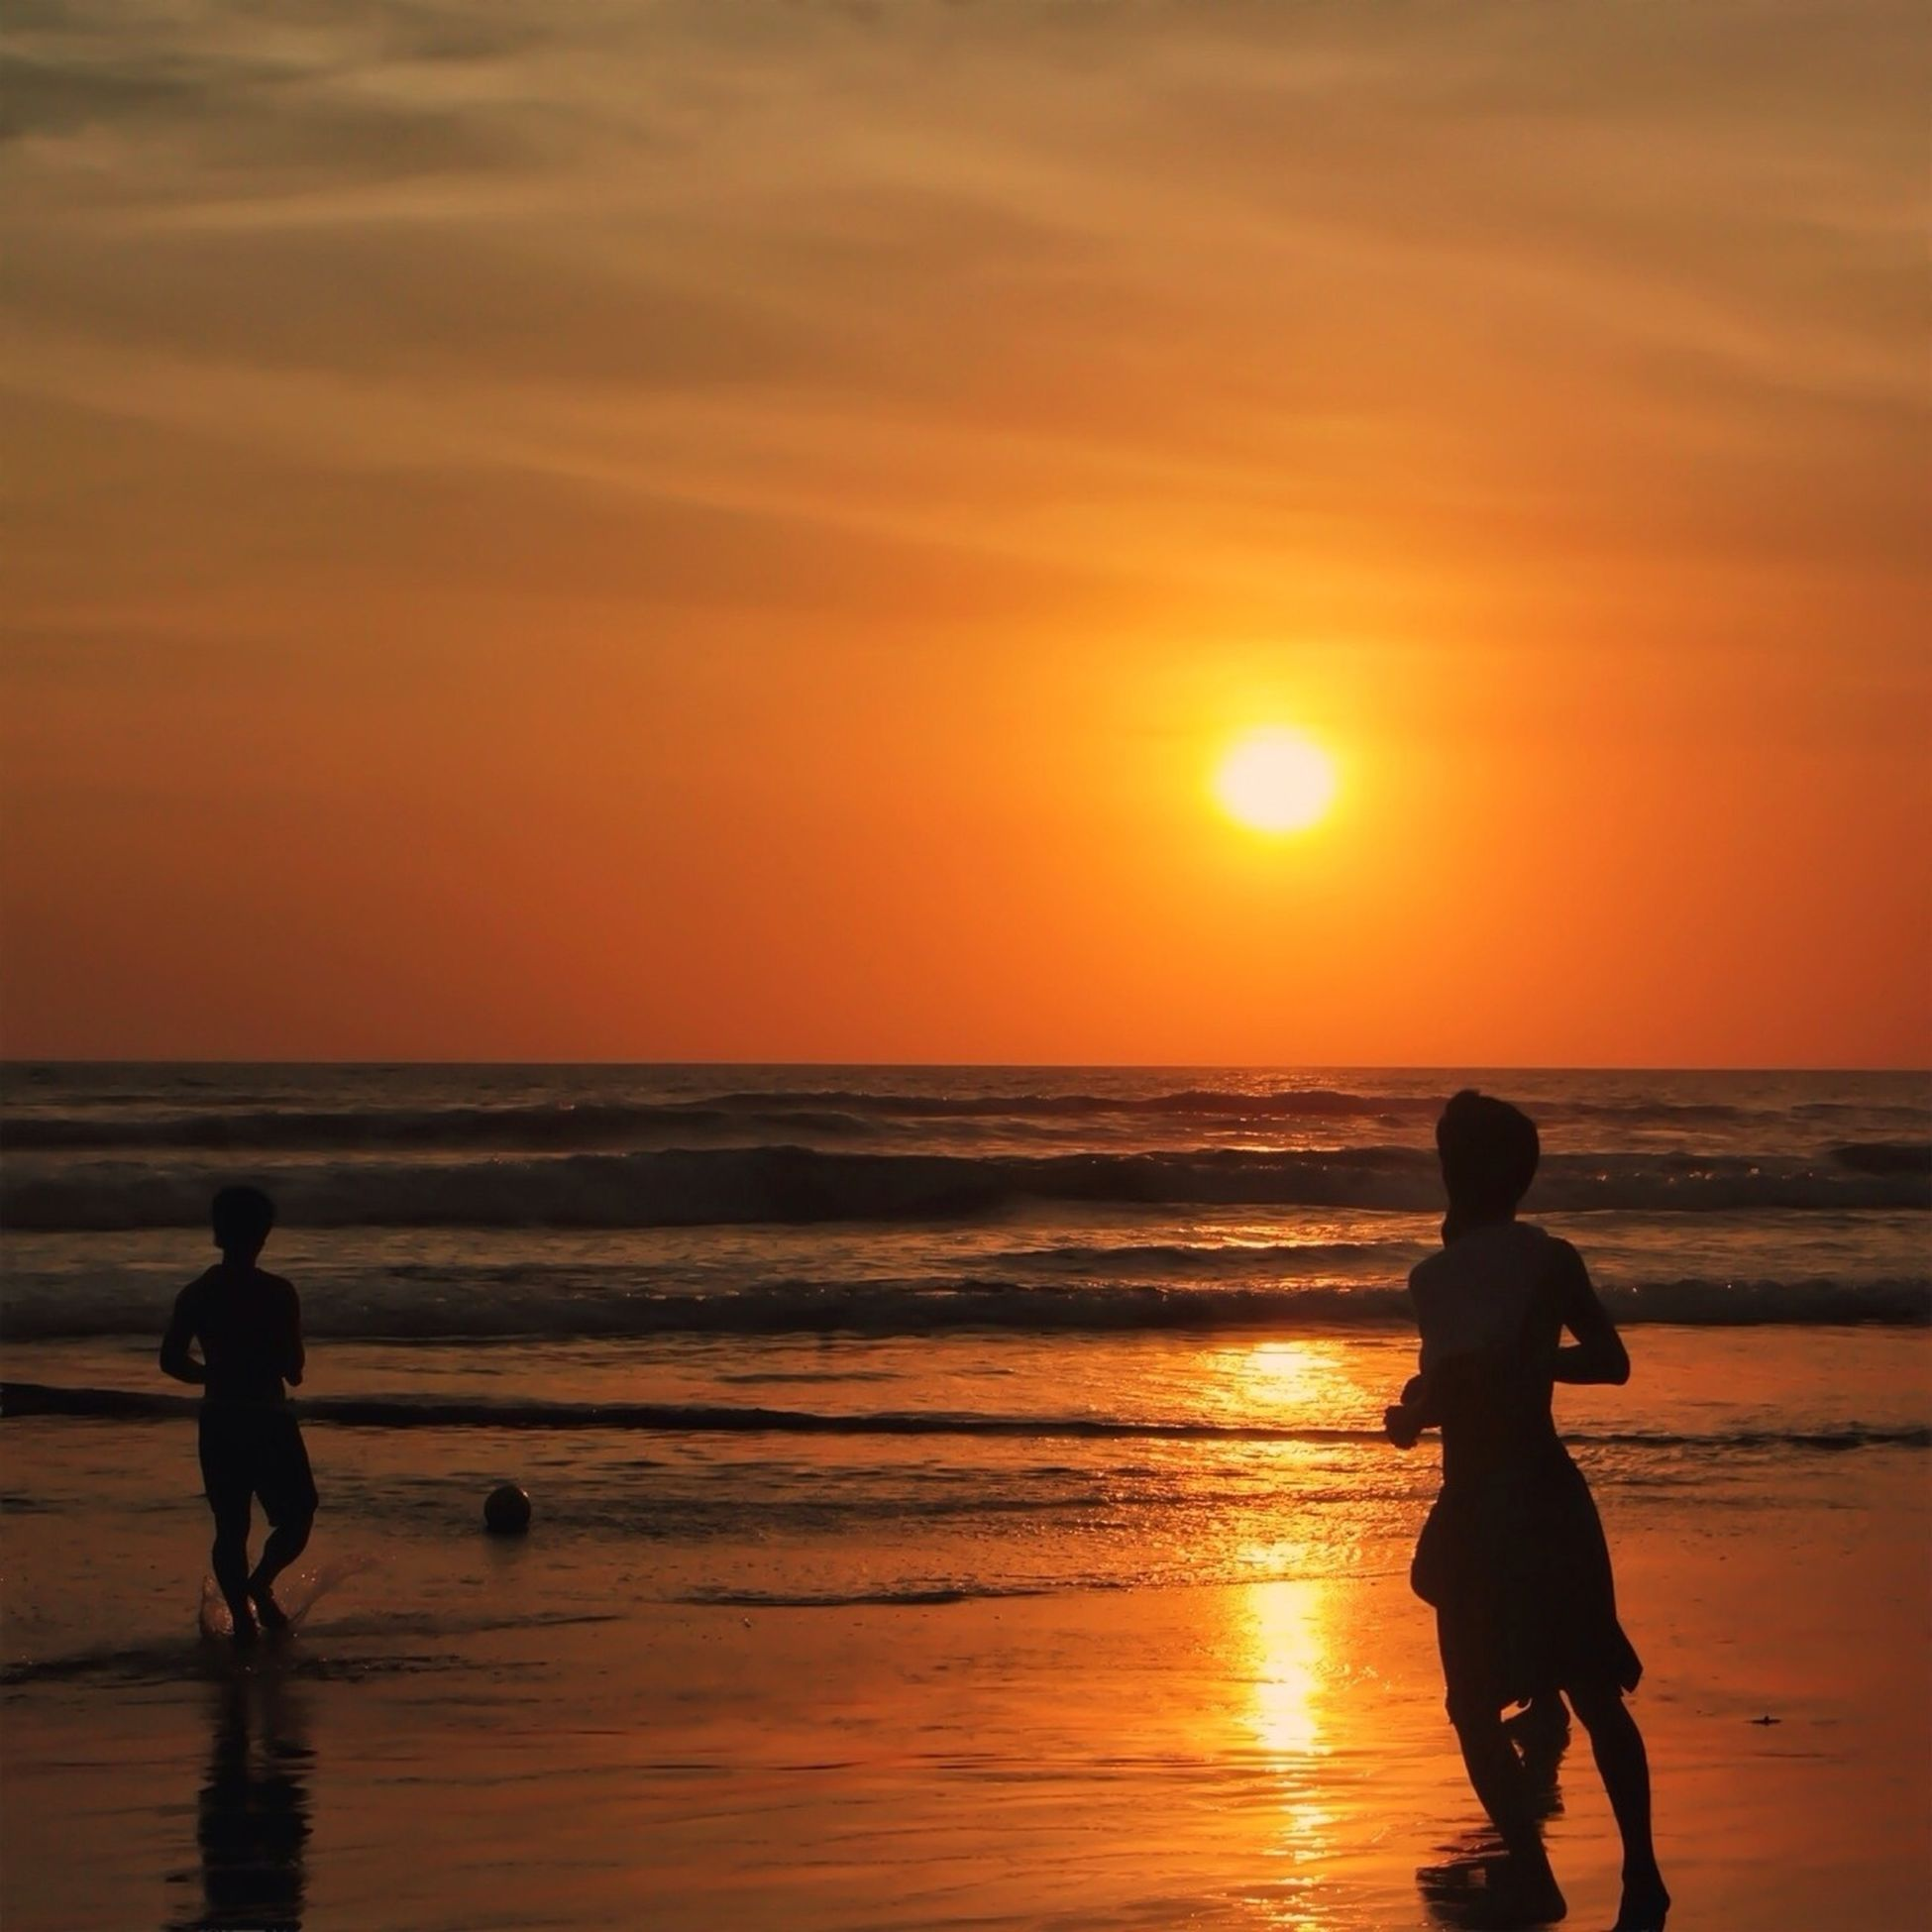 horizon over water, sea, beach, sunset, shore, water, outdoors, wave, sun, silhouette, vacations, ocean, seascape, scenics, sand, light, getting away from it all, escapism, weekend activities, enjoyment, vacations